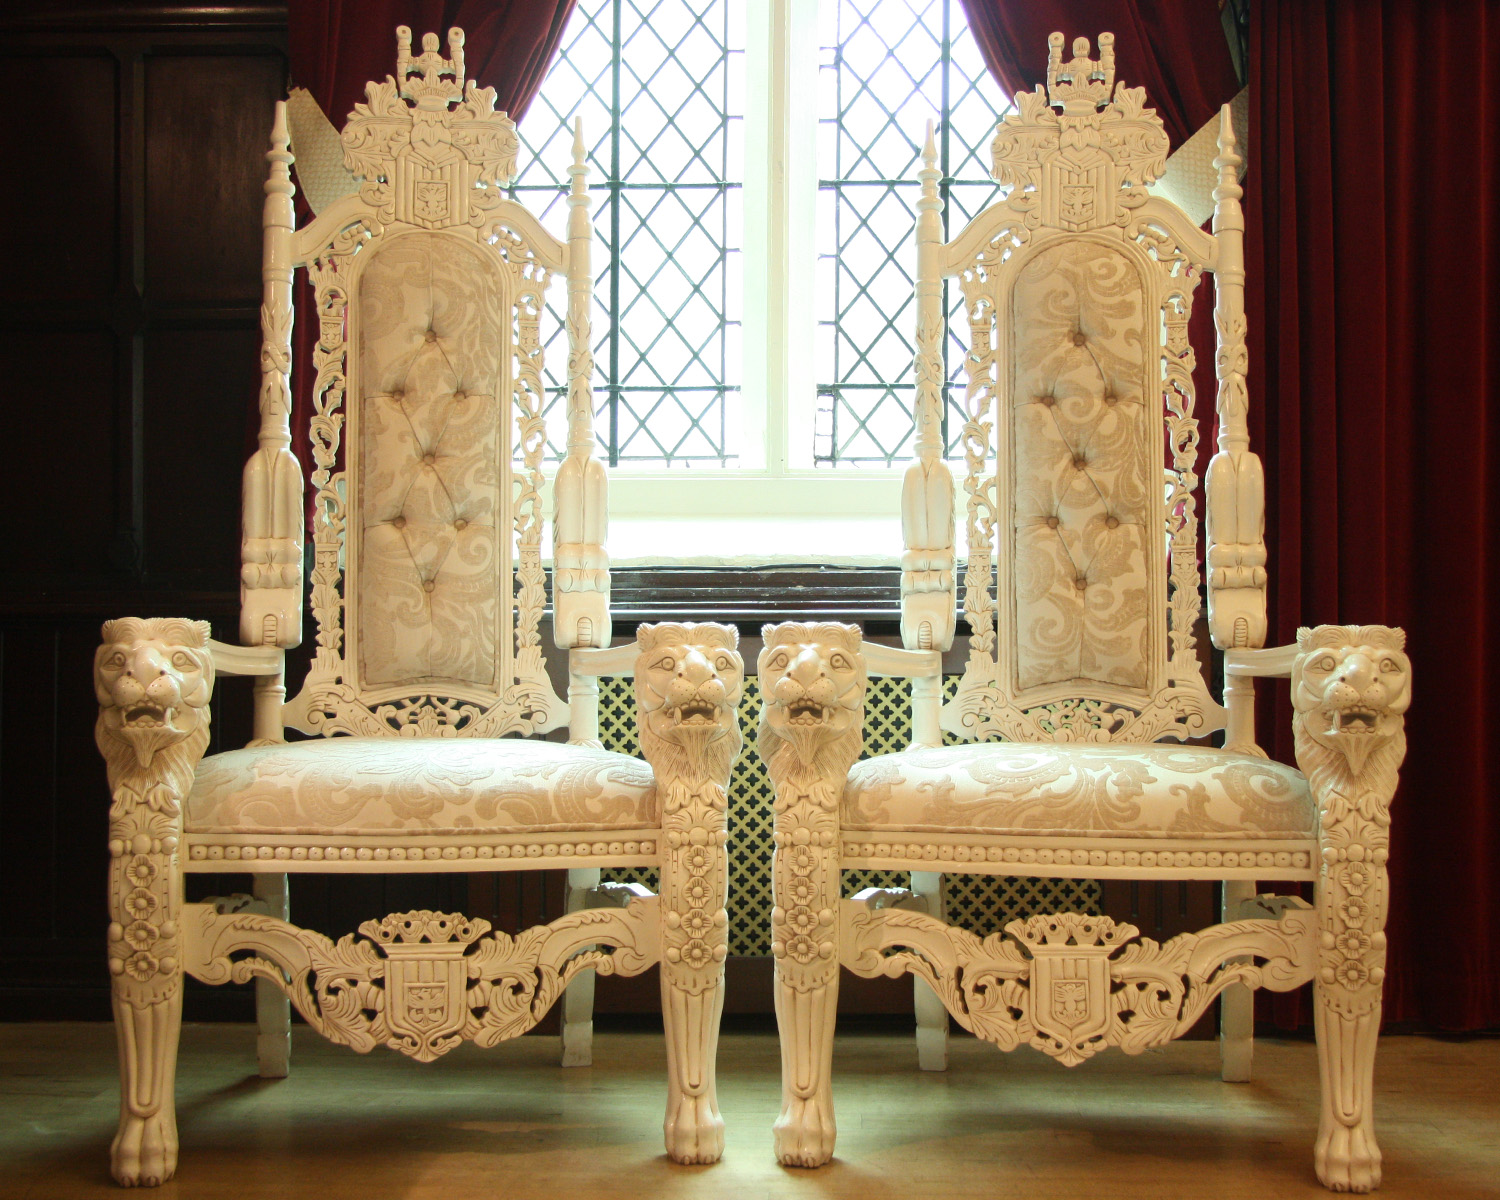 King And Queen Chair Rental Posh Chair Covers And Bows: Bride And Groom Wedding Throne Hire